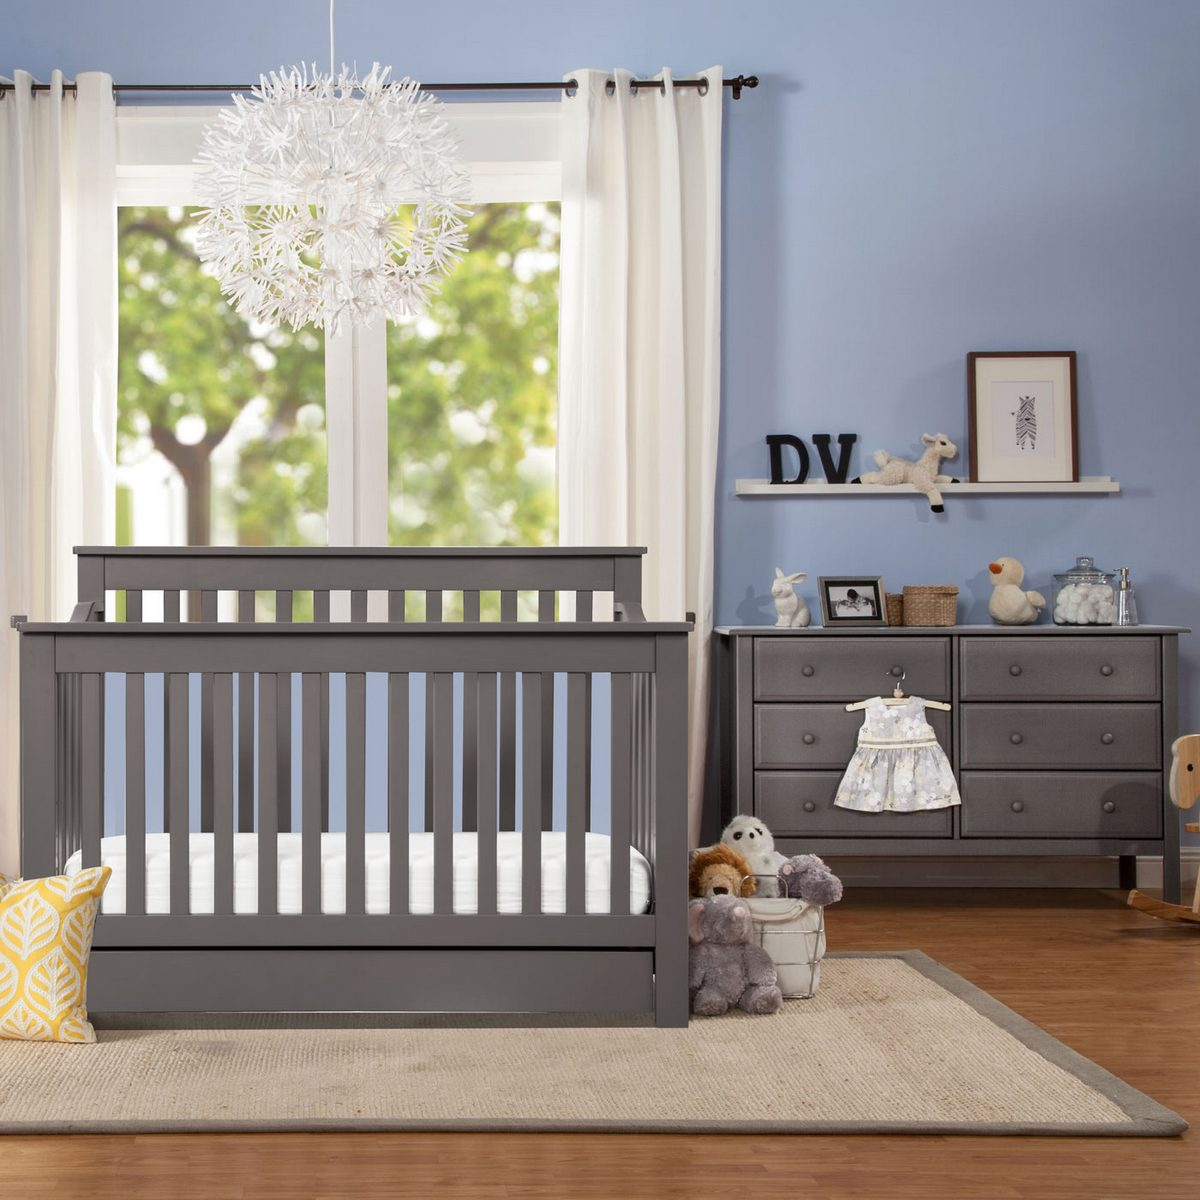 Davinci 2 Piece Nursery Set Piedmont 4 In 1 Convertible Crib And 6 Drawer Double Dresser In Slate Free Shipping